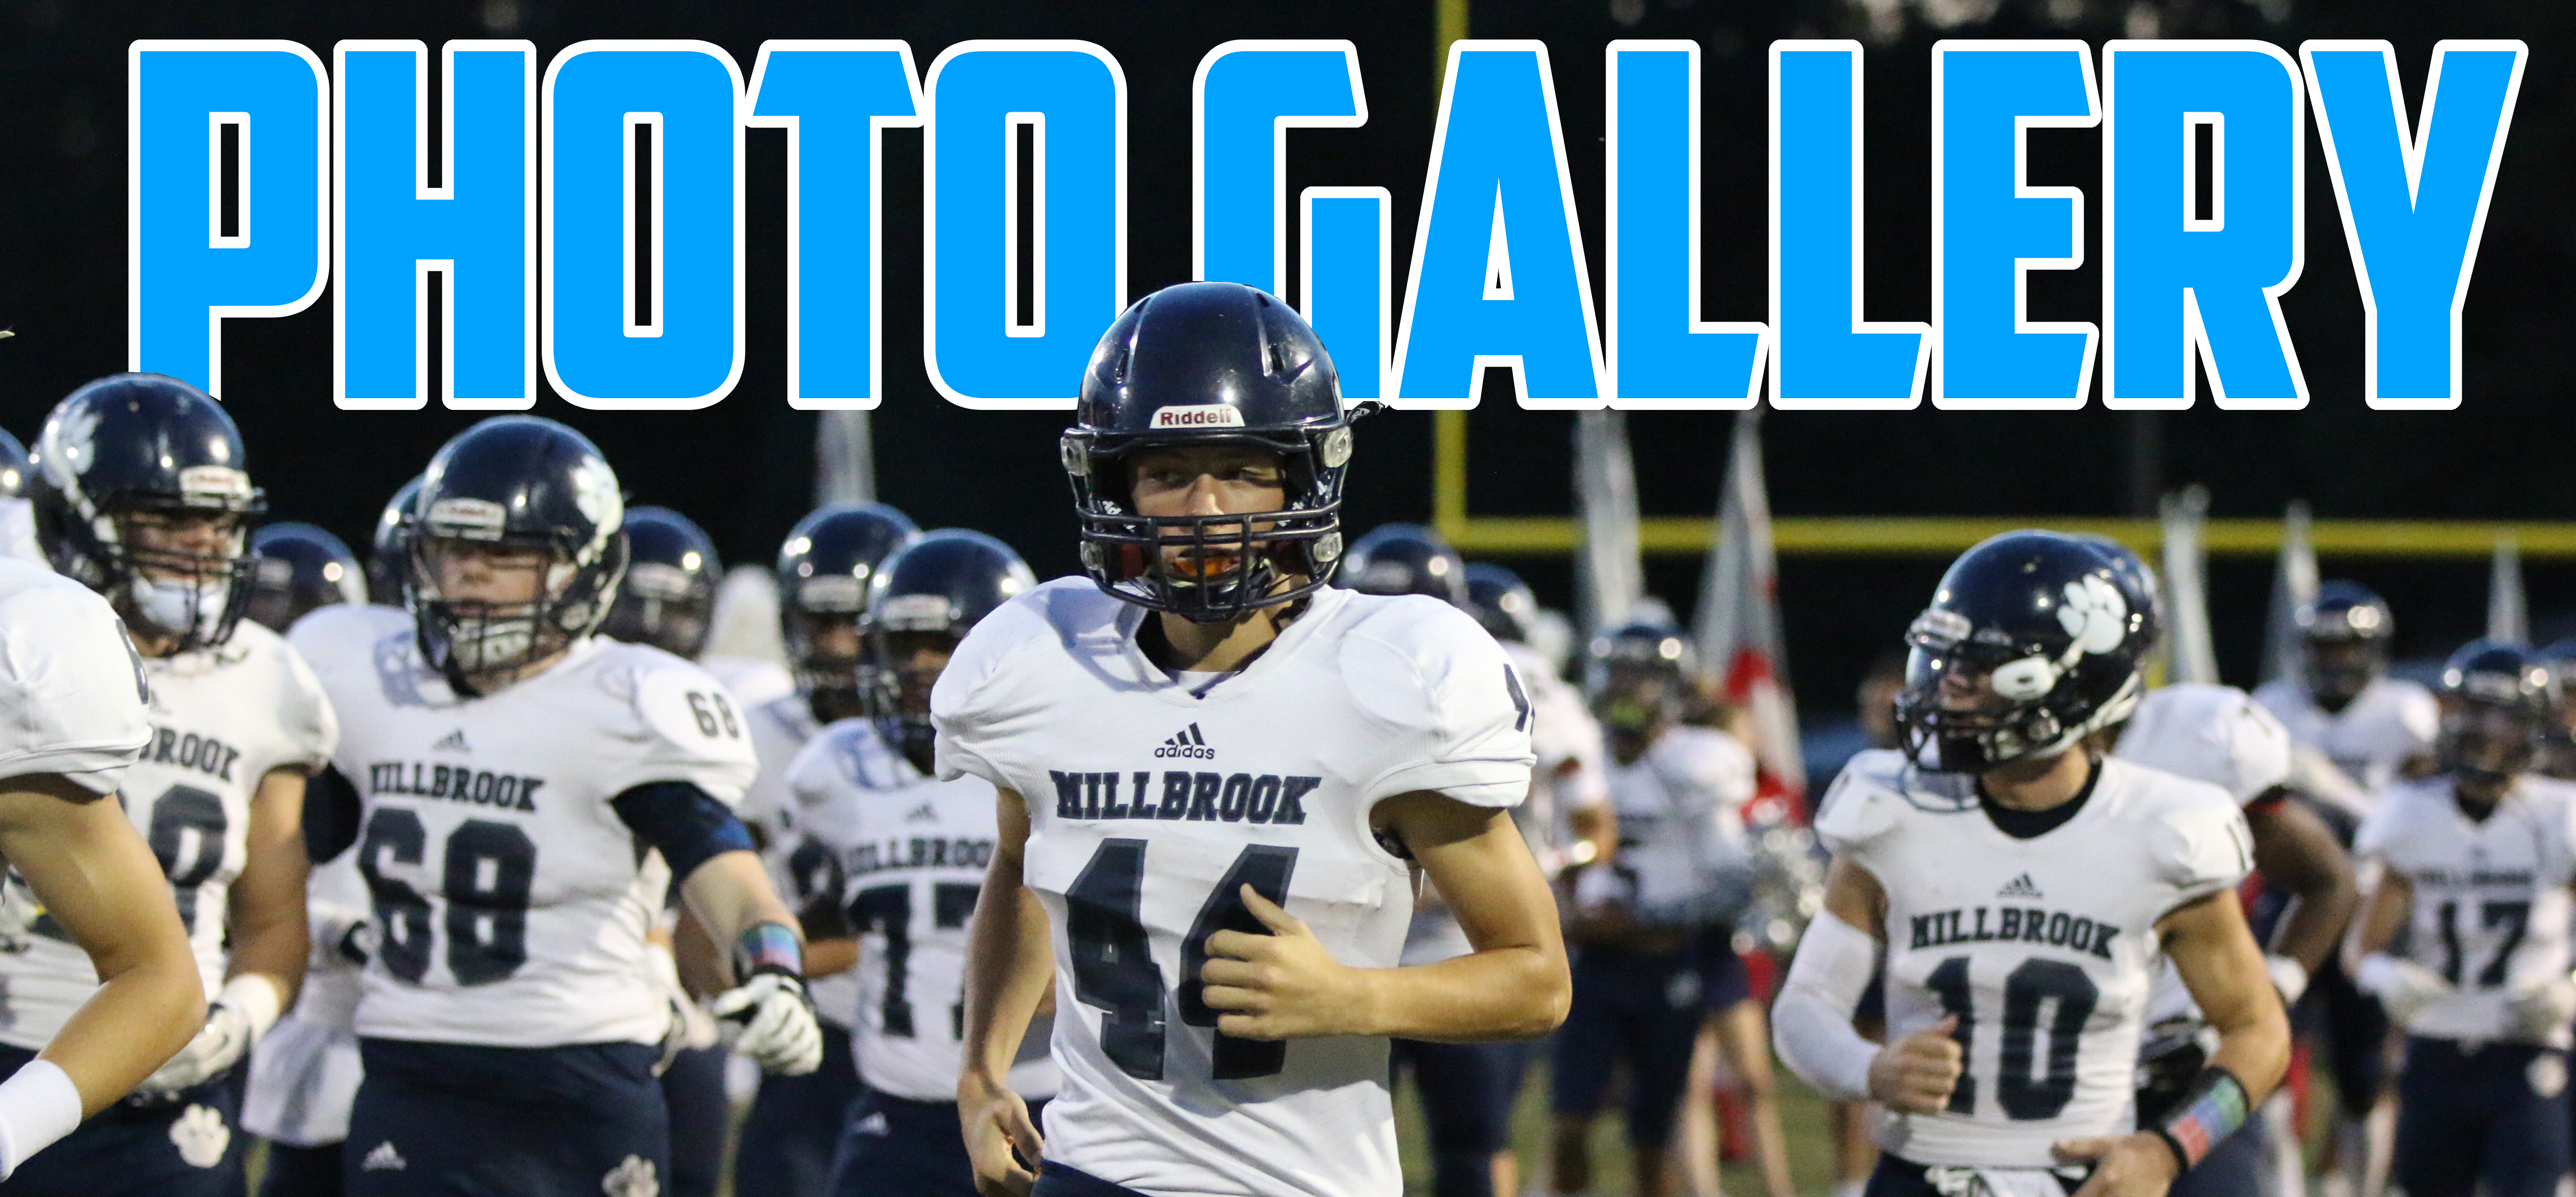 GALLERY: Millbrook at Broughton